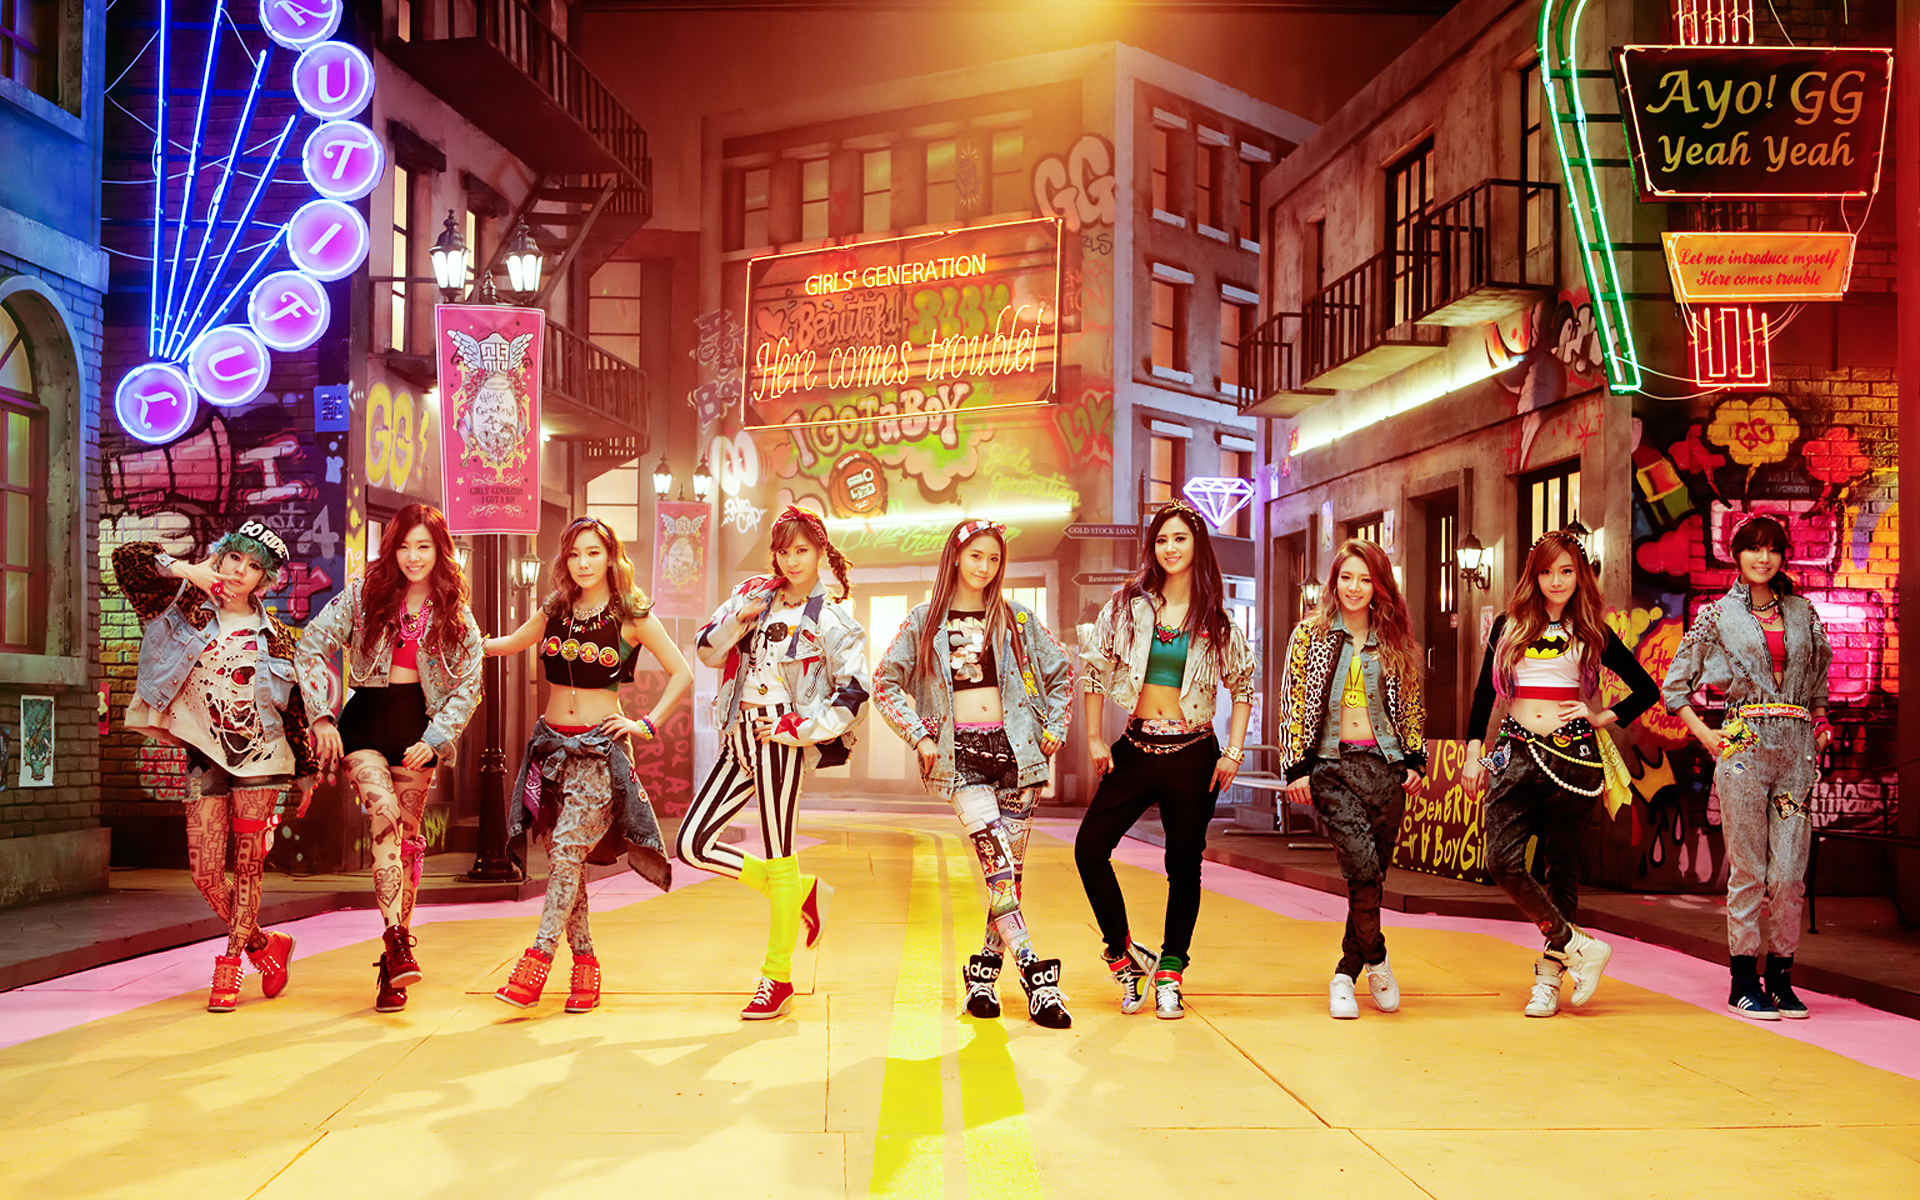 http://soshified.com/wp-content/uploads/2013/01/I-Got-A-Boy.jpg